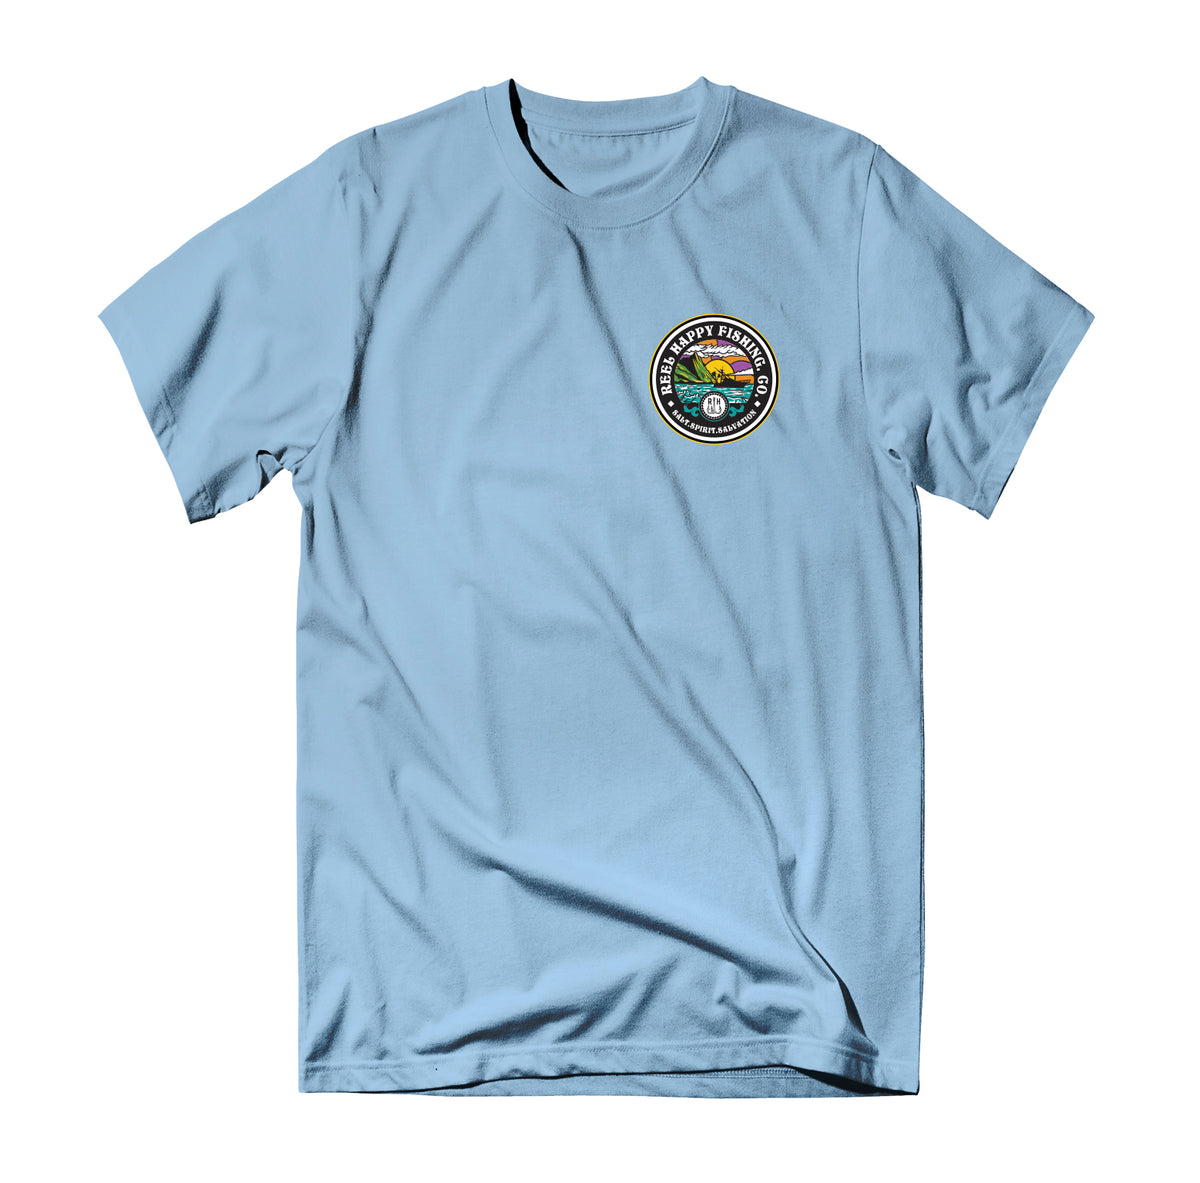 Saltscape Tee - Light Blue - Reel Happy Co